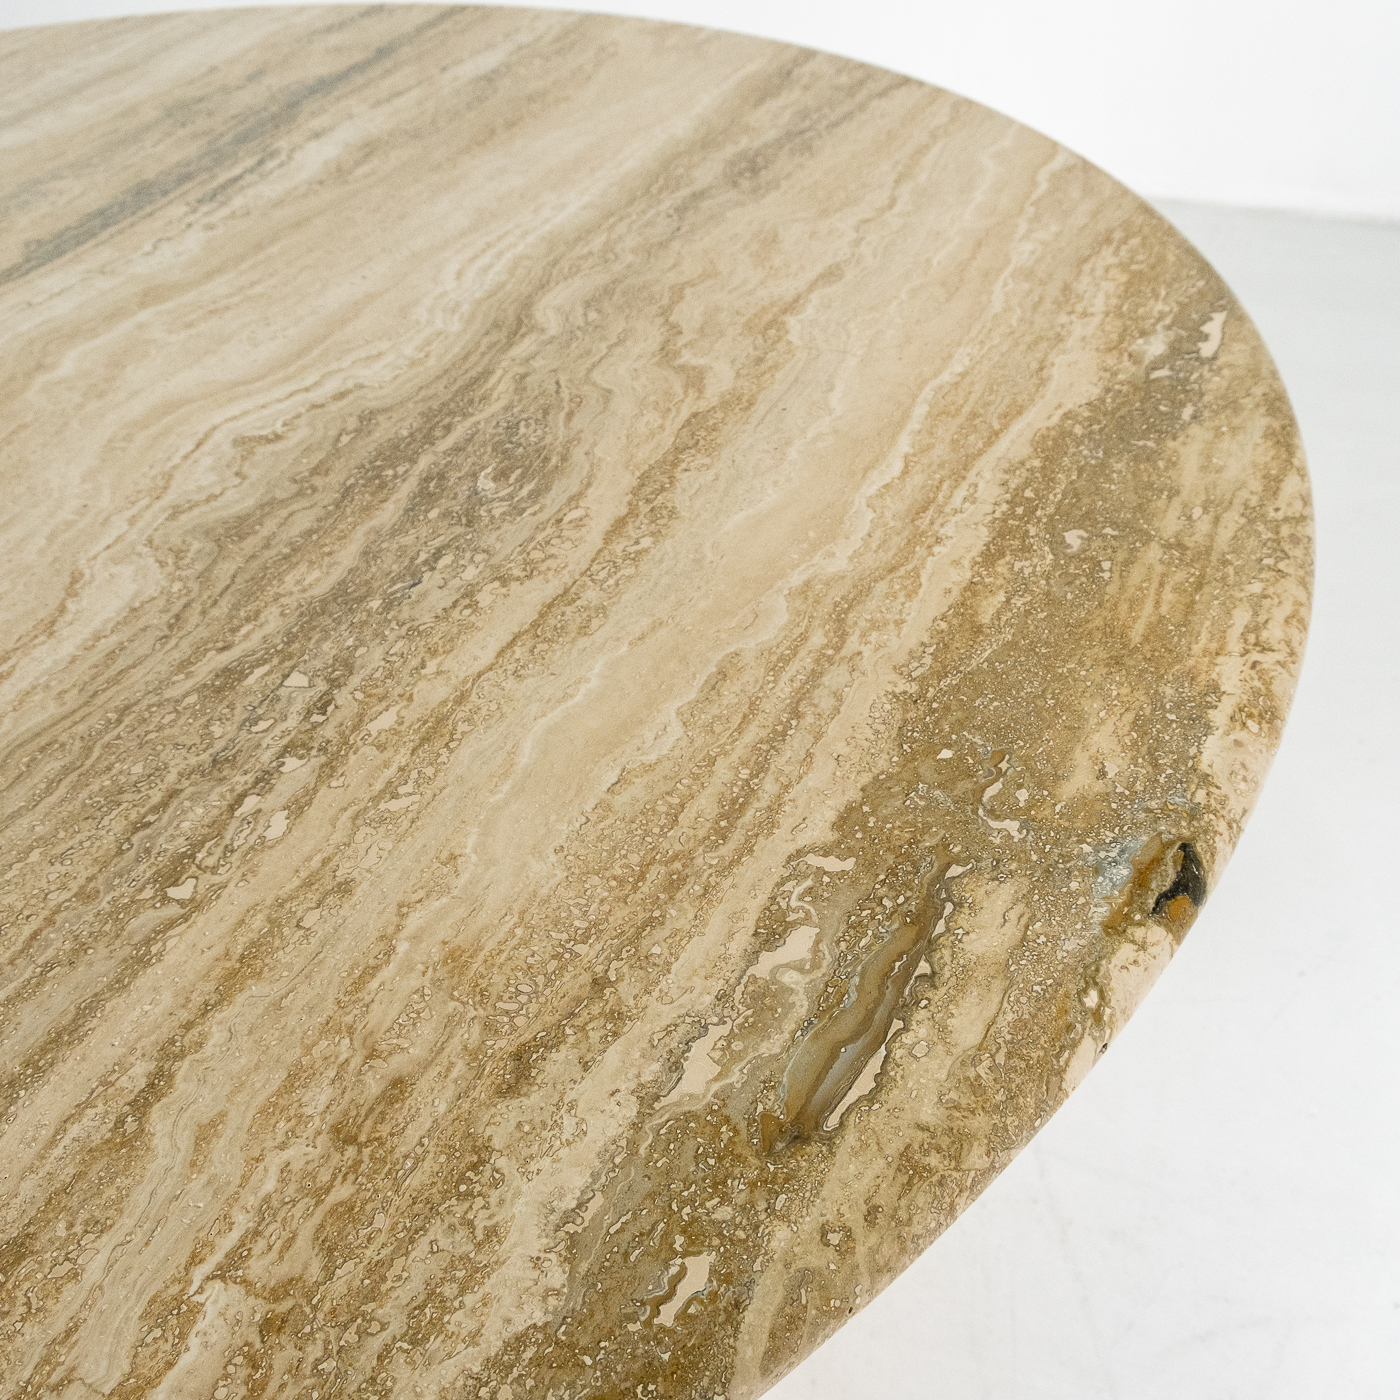 Round Travertine Dining Table In The Style Of The M1 By Angelo Mangiarotti, 1980s, Italy 82